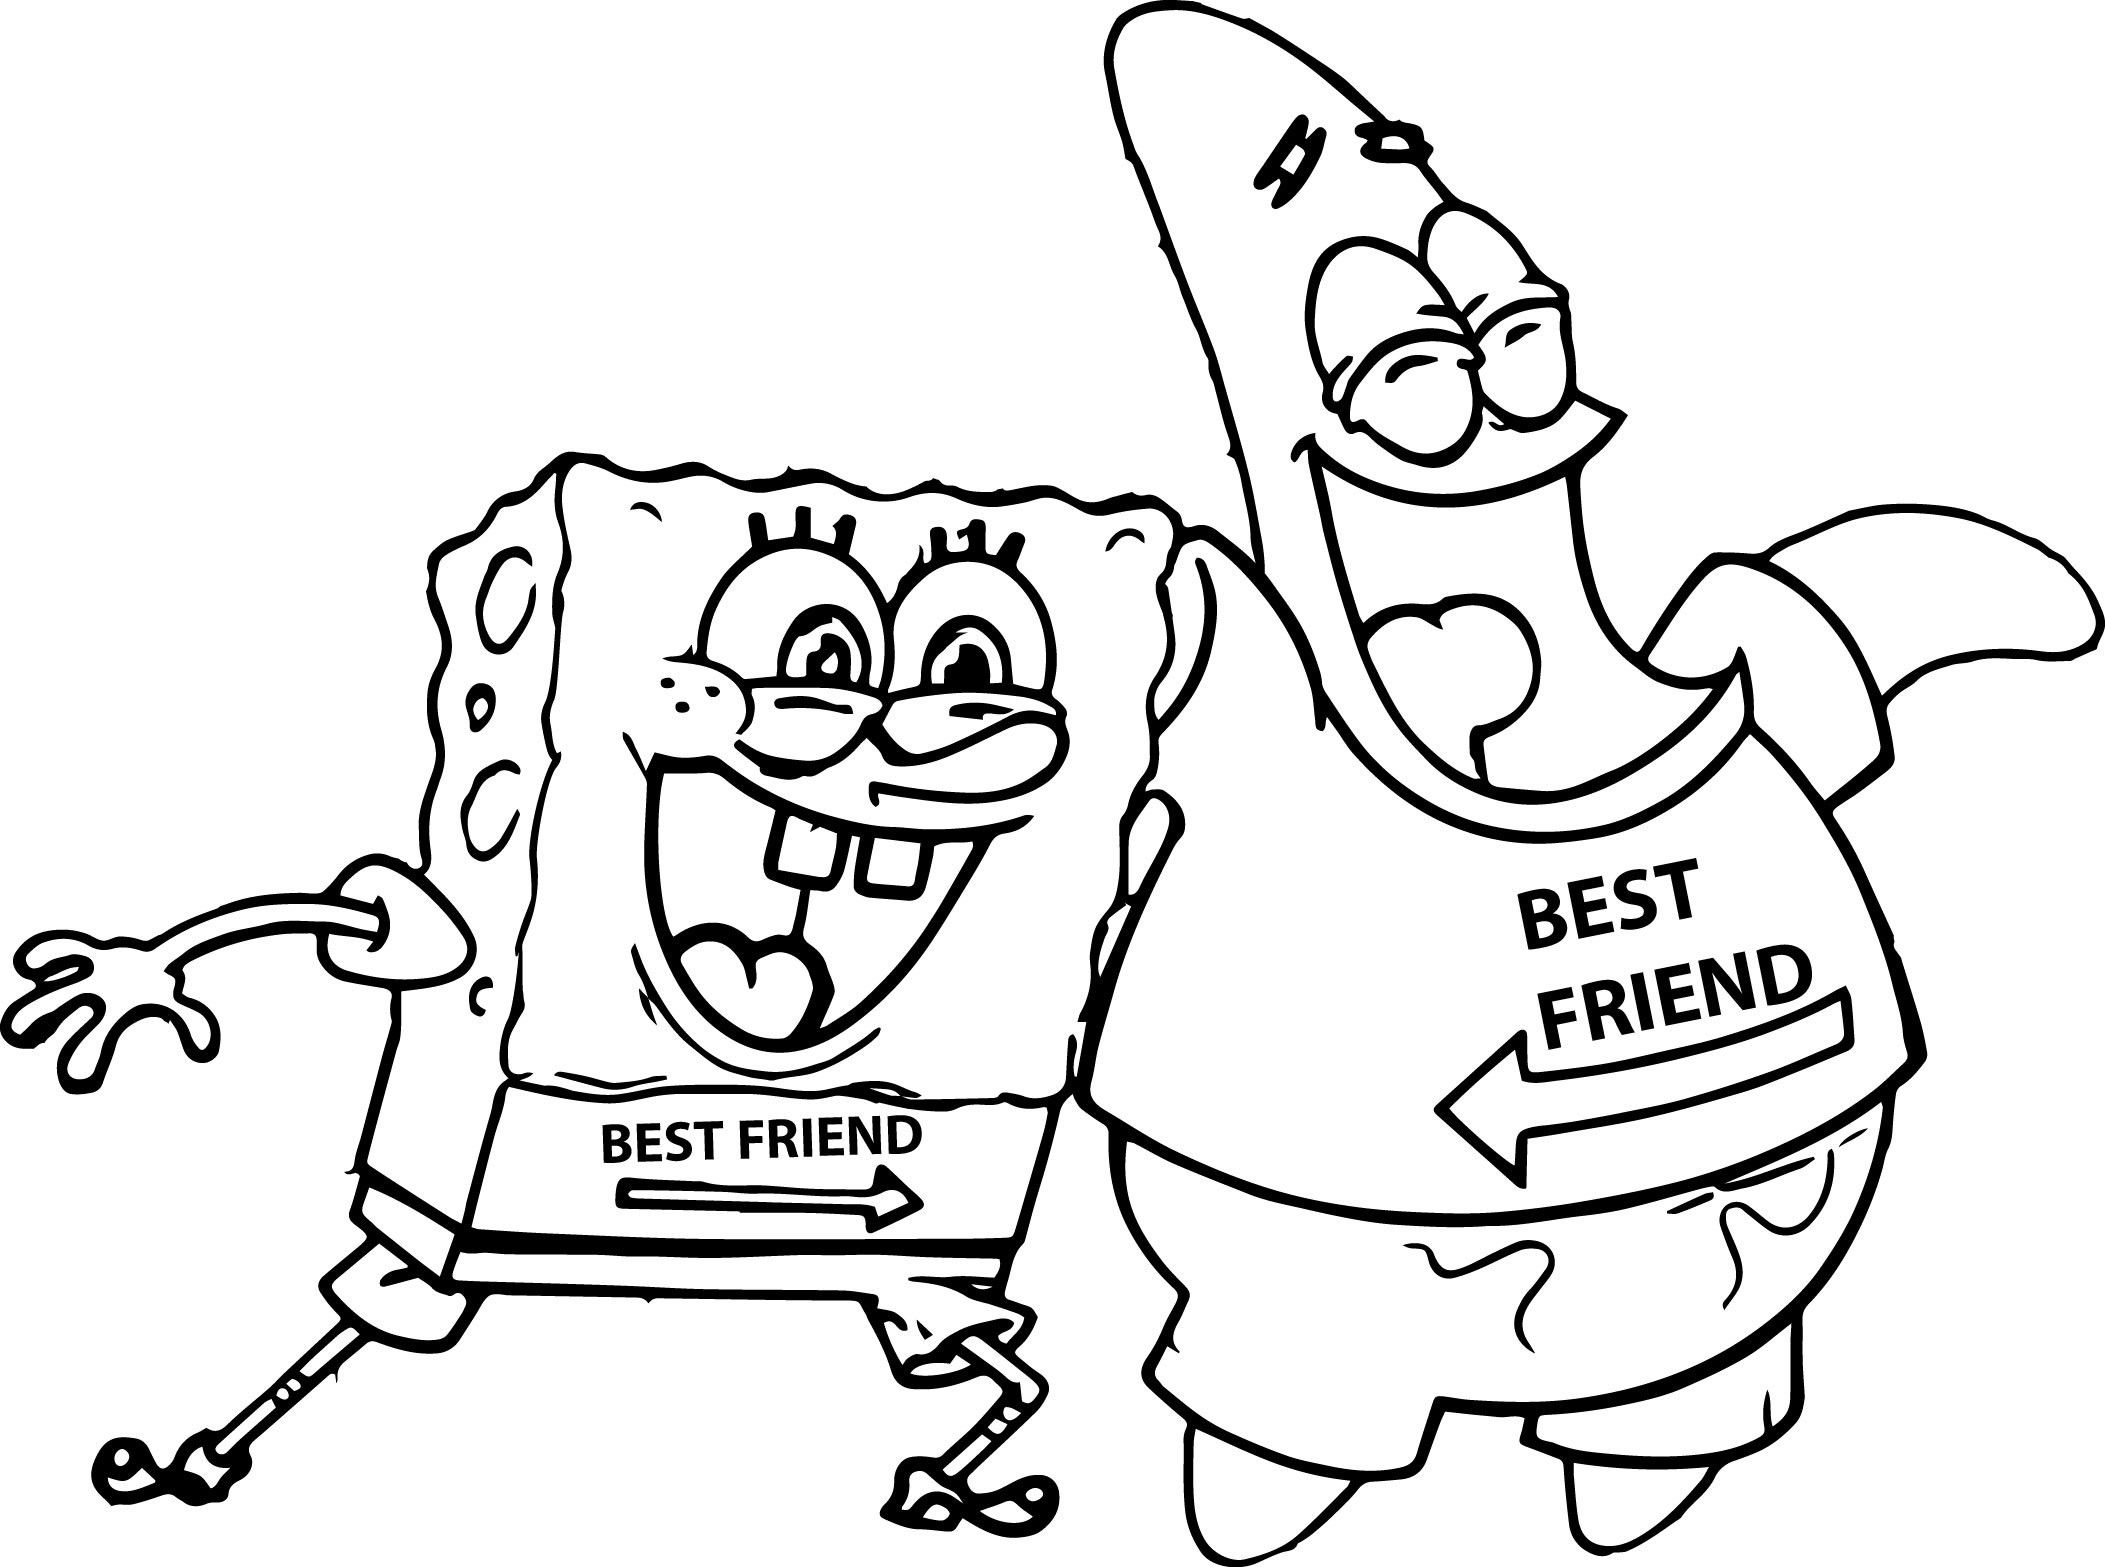 Spongebob Coloring Pages In Color Through The Thousands Of